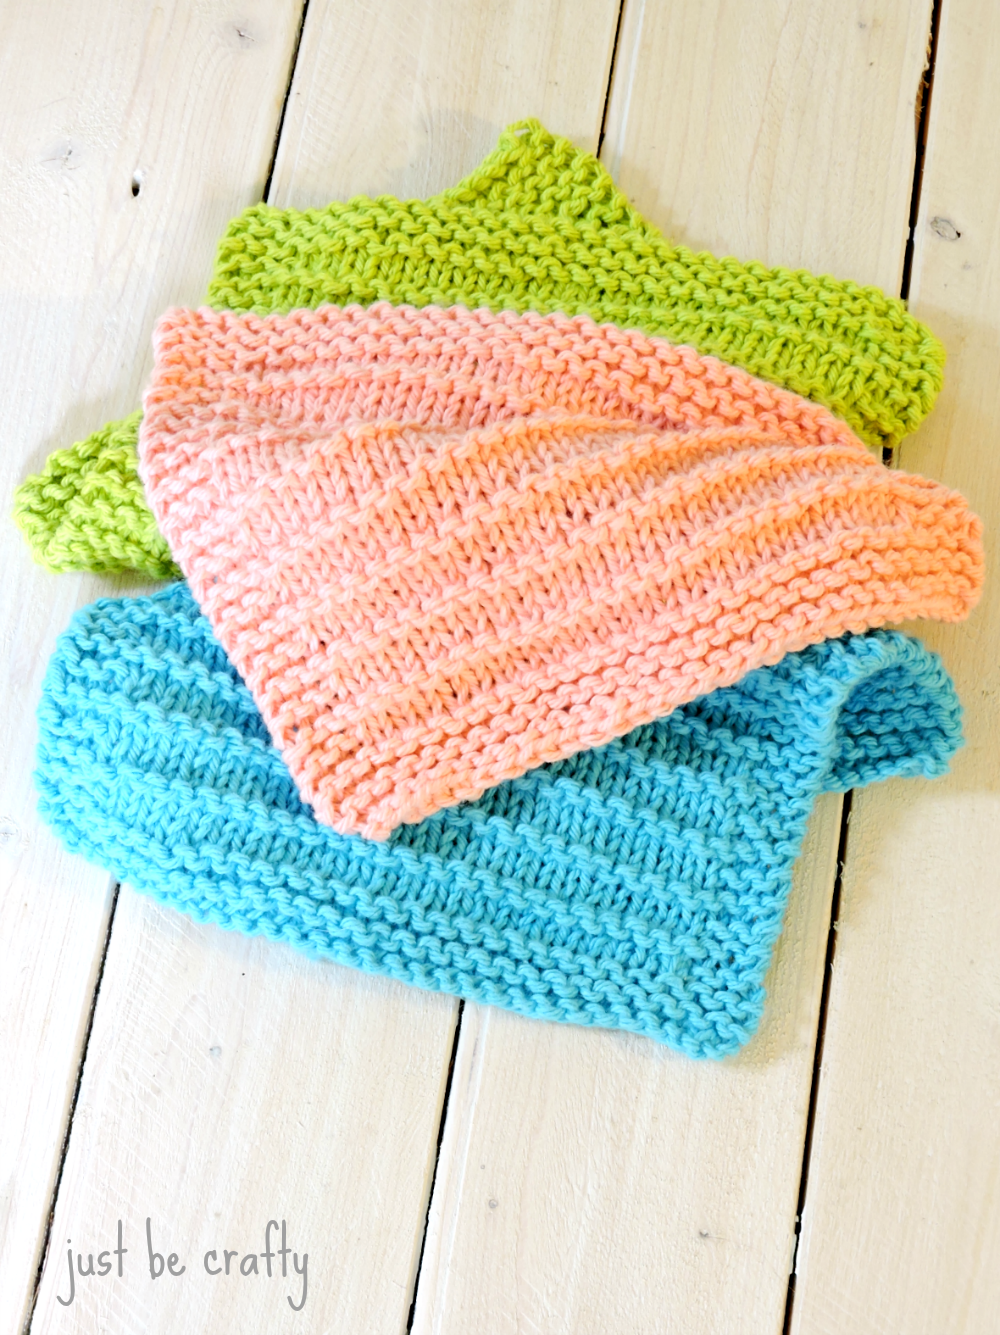 Dishcloth Knitting Patterns Magnificent Design Ideas